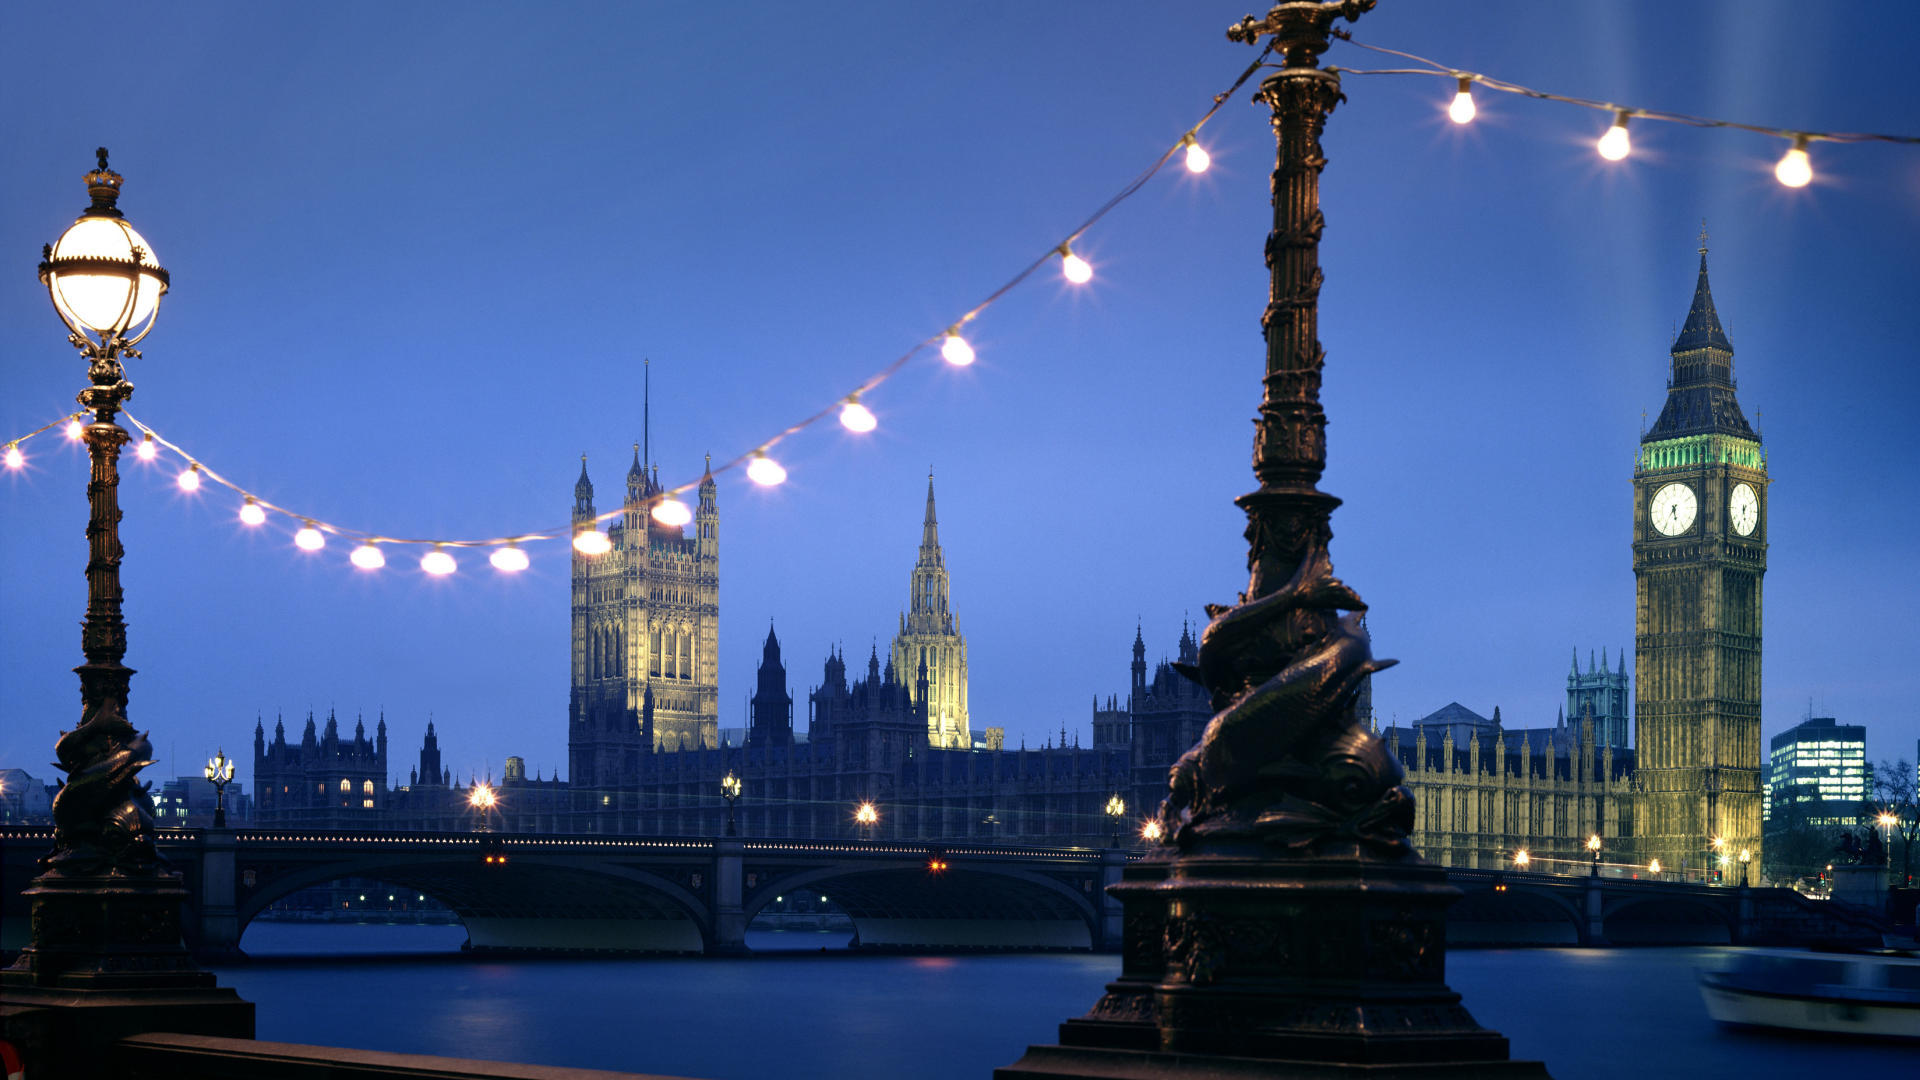 31561 download wallpaper Architecture, Big Ben screensavers and pictures for free